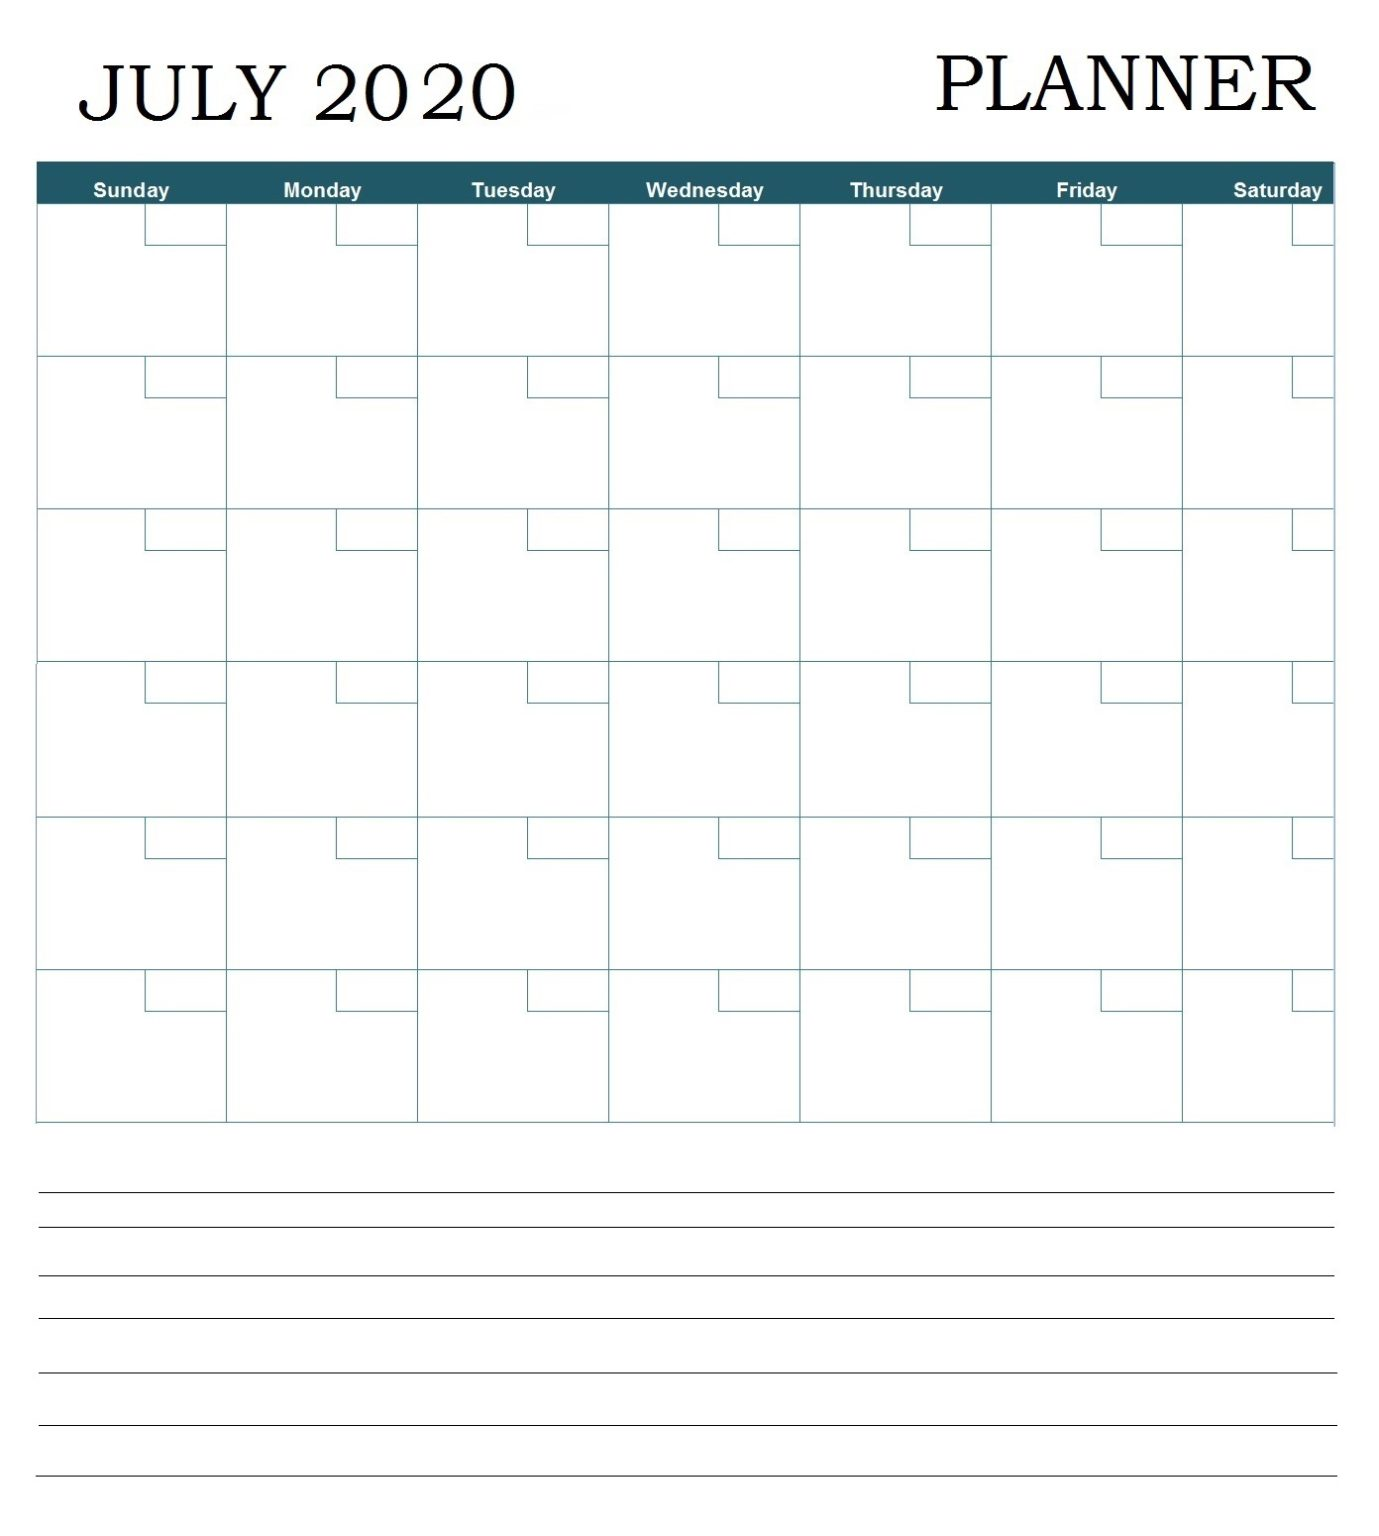 July 2020 Professional Calendar